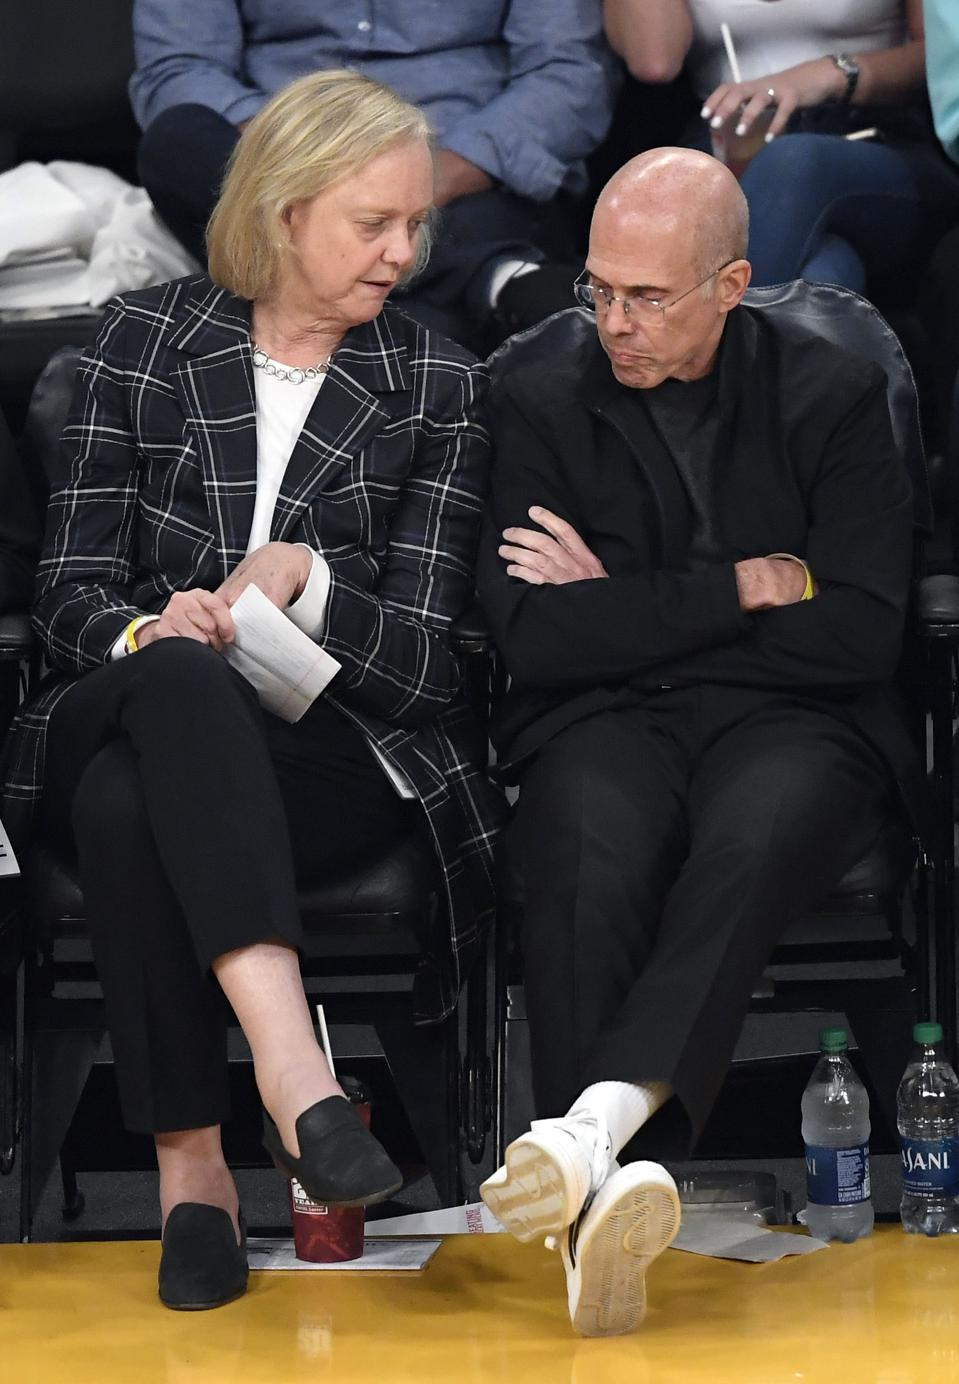 Meg Whitman, former CEO of eBay and former Republican nominee for Governor in California, sits alongside Jeffrey Katzenberg, the Founder of Quibi.